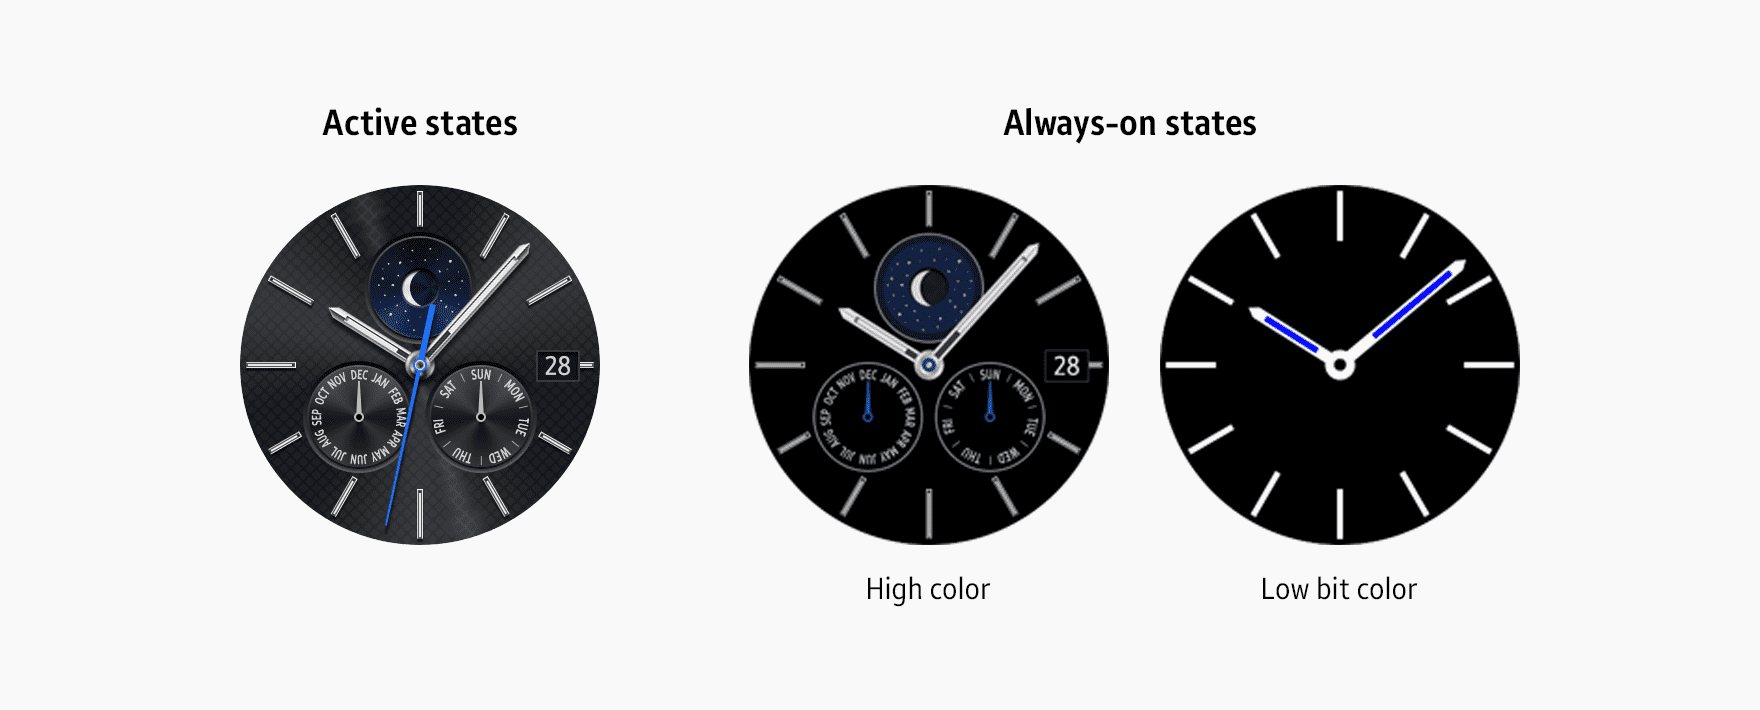 The appearance of watch face designs may vary depending on the color mode and state.